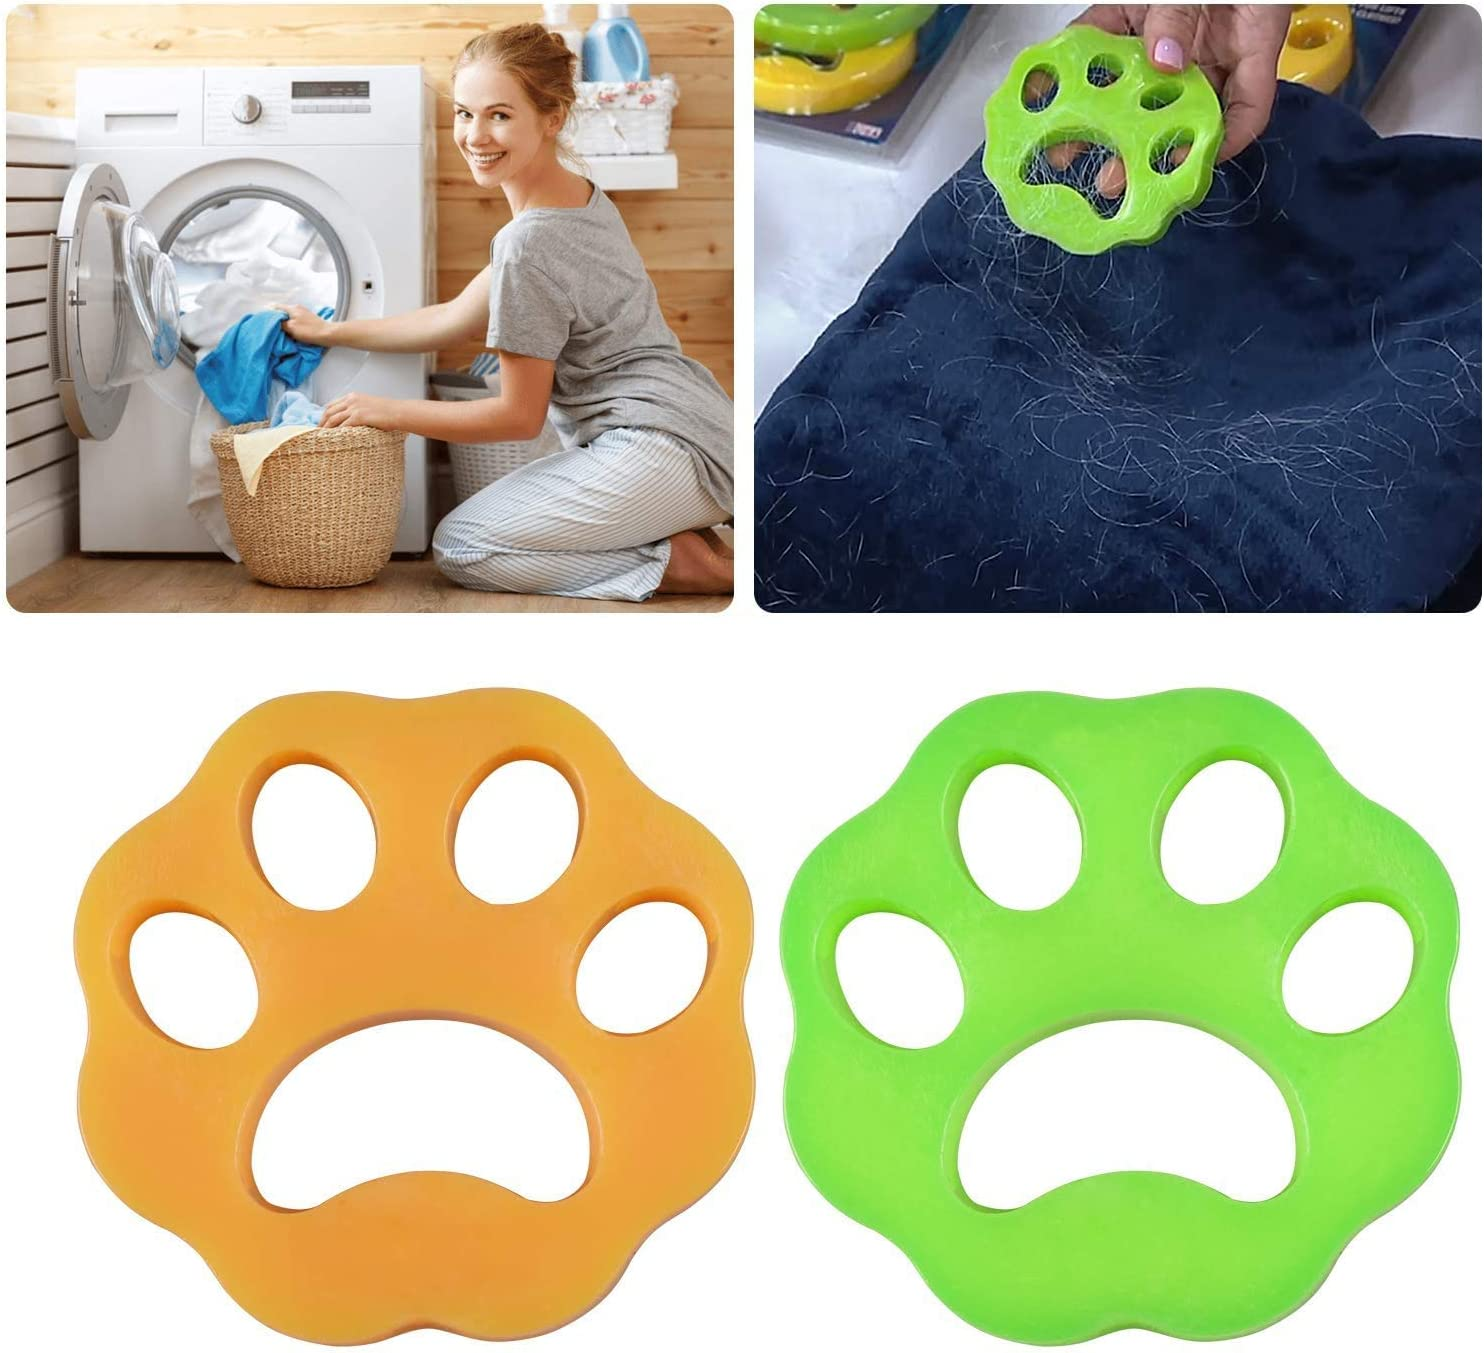 FUZPP Pet Hair Remover for Laundry,Dogs and Cats Hair Catcher for Washing Machine,Non-Toxic Safety Reusable Floating Pet Fur Catcher, Laundry Lint and Fur Remover-2 Pcs